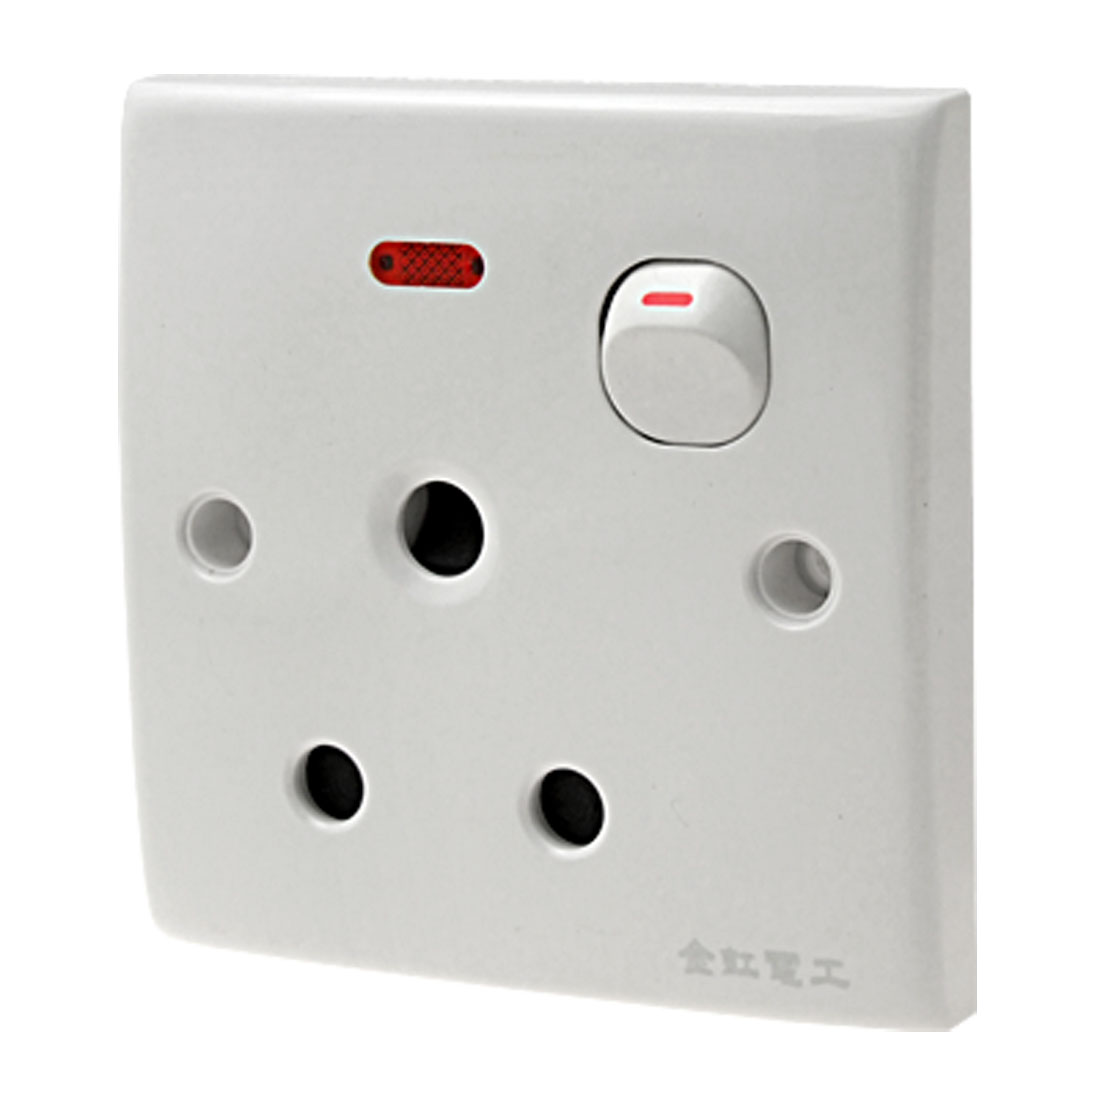 16A AC250V South Africa Socket W Switch Indicator Wall Plate